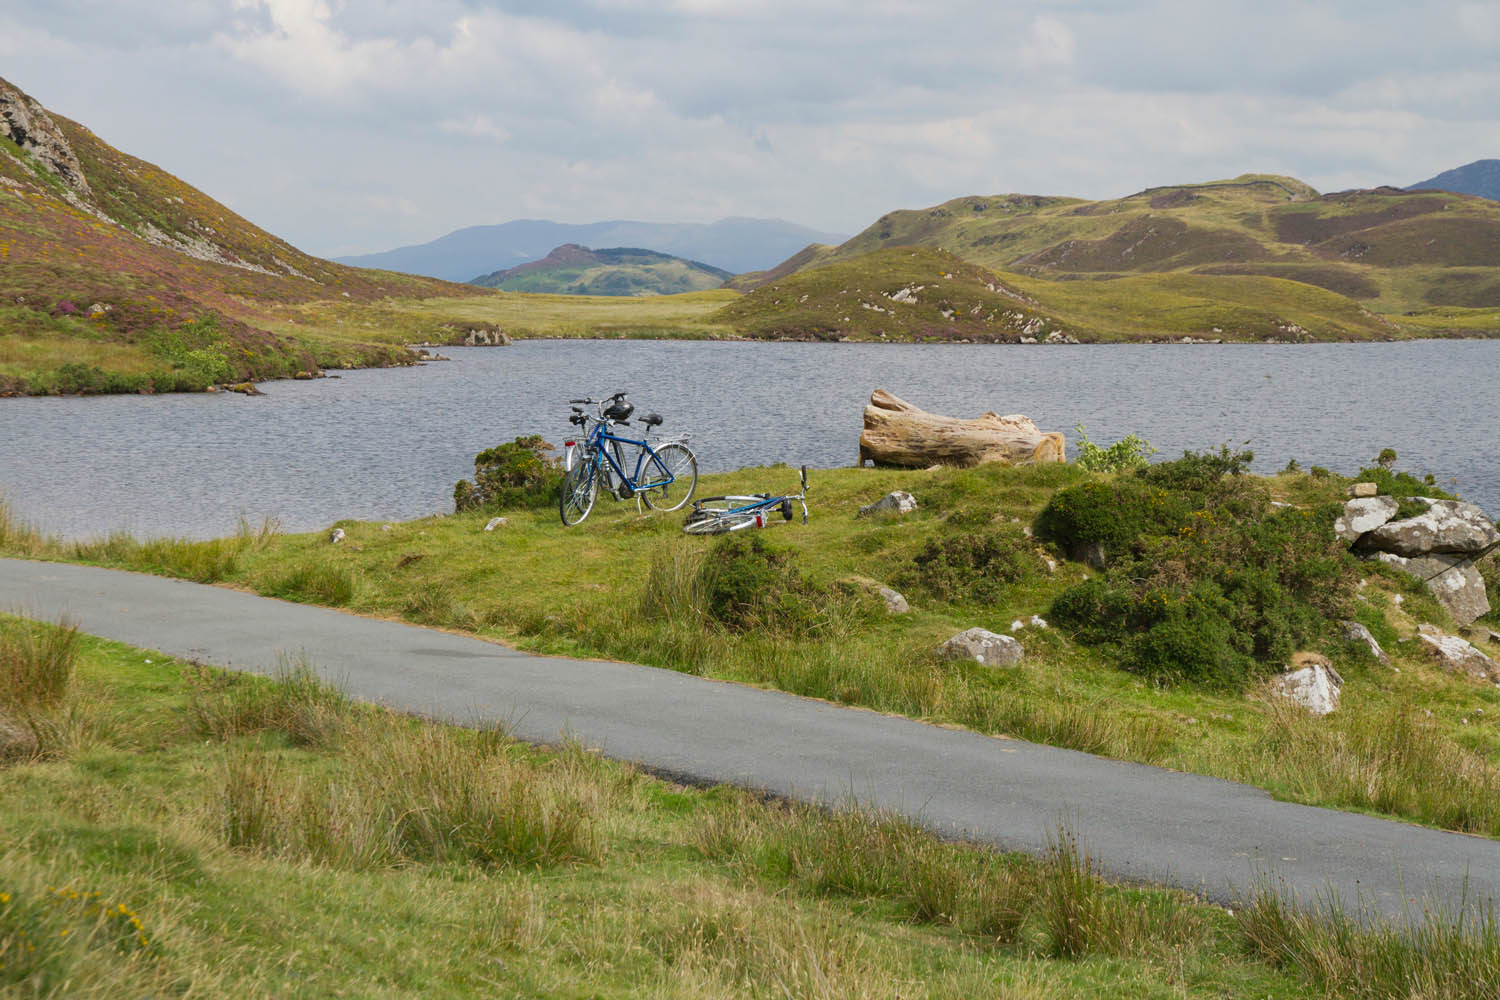 View of cyclist's bikes next to a lake